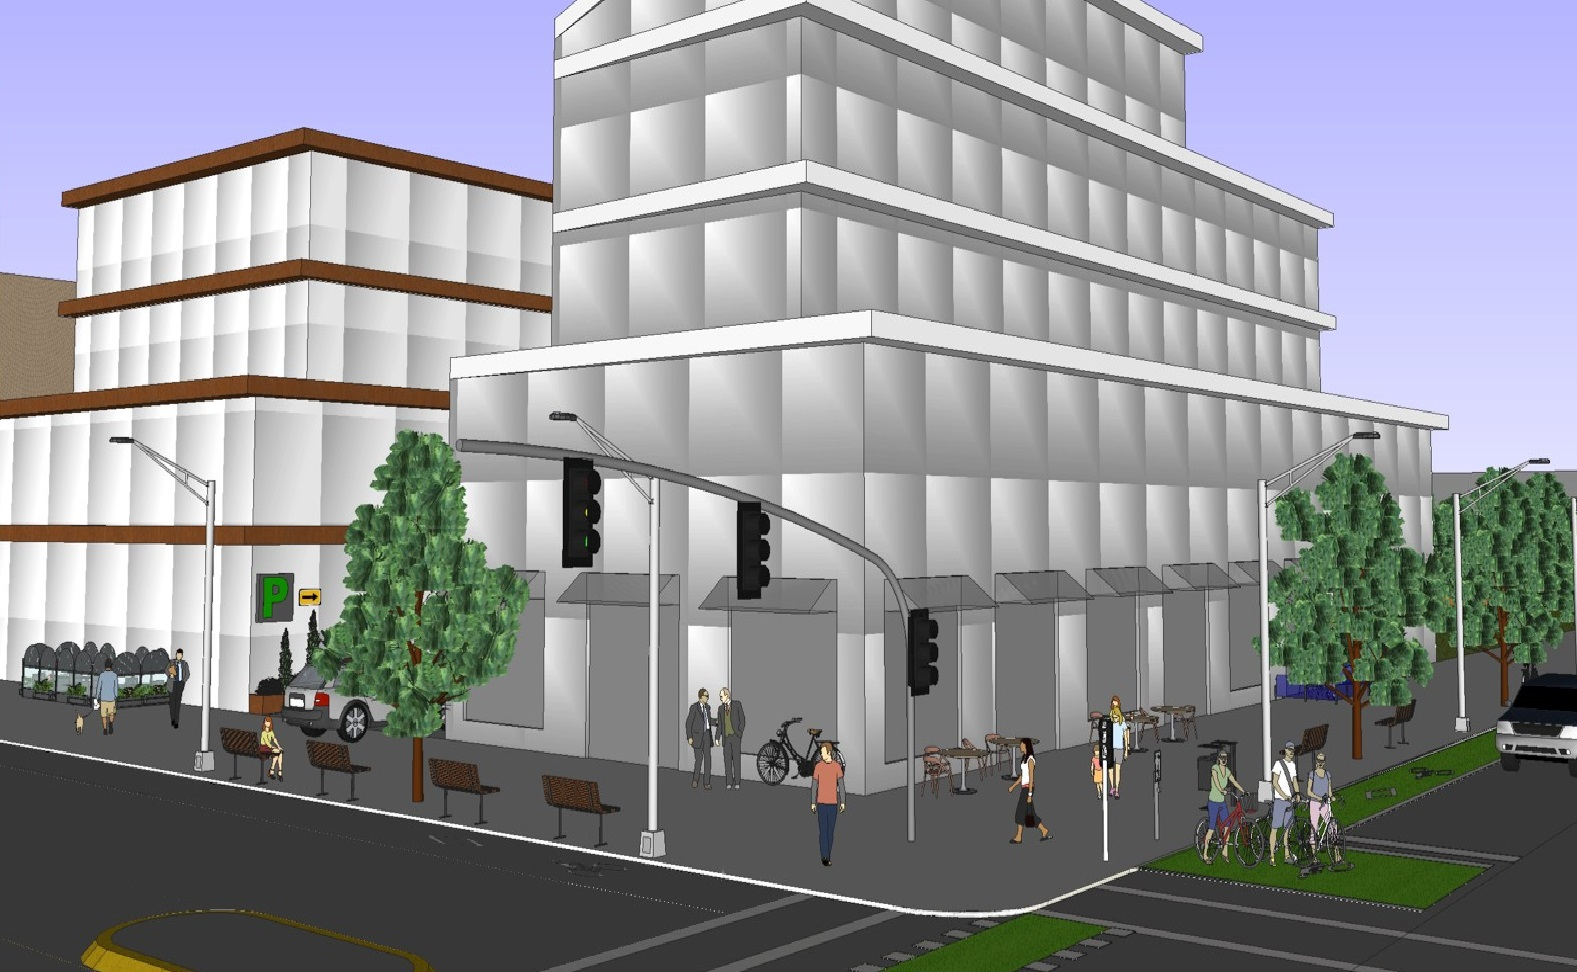 Image of streetscape showing matters that may be addressed as part of site plan control including access for pedestrians and vehicles, walkways, lighting, landscaping, and exterior design.